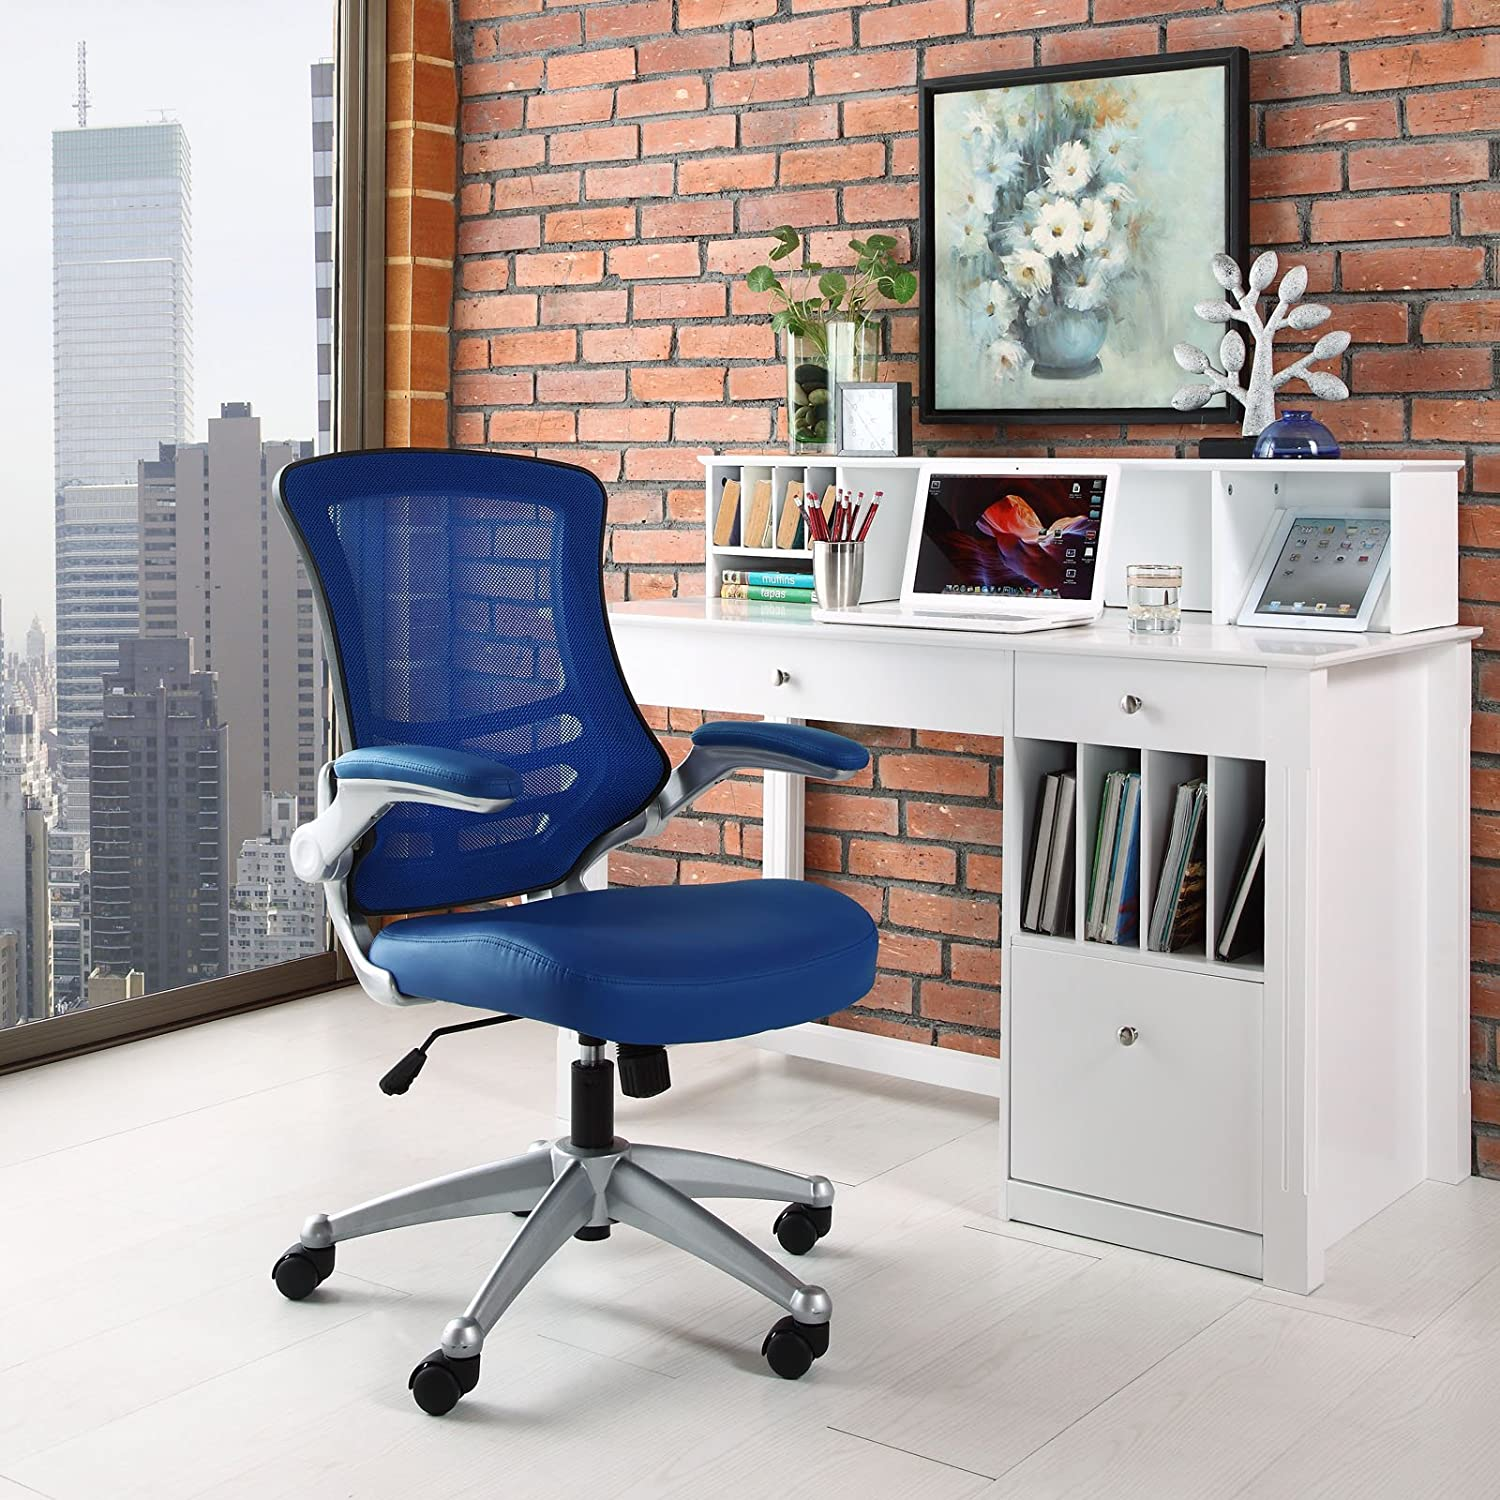 Amazon Modway Attainment Mesh Back And Blue Vinyl Modern Office Chair With Flip Up Arms